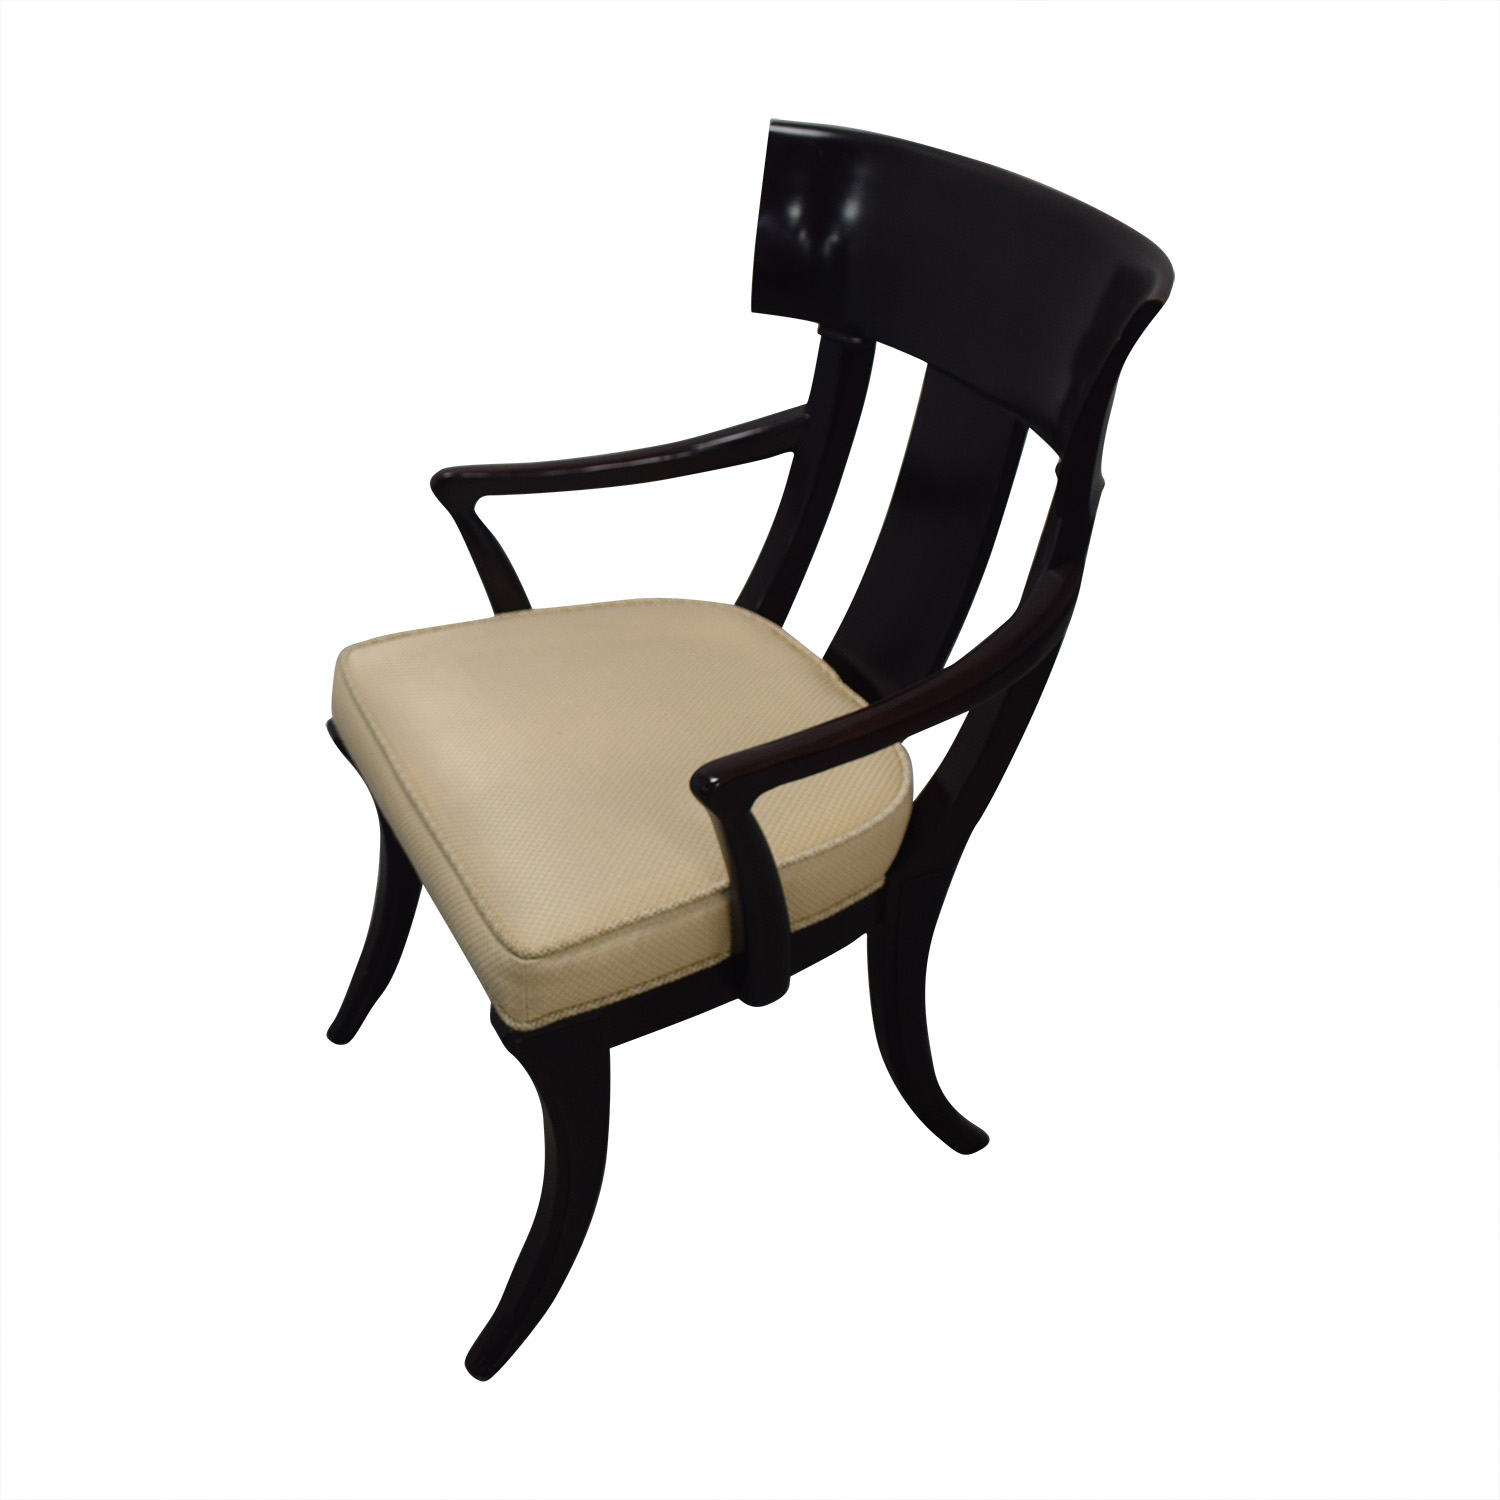 shop Henredon Black with Beige Upholstery Dining Chairs Henredon Furniture Chairs